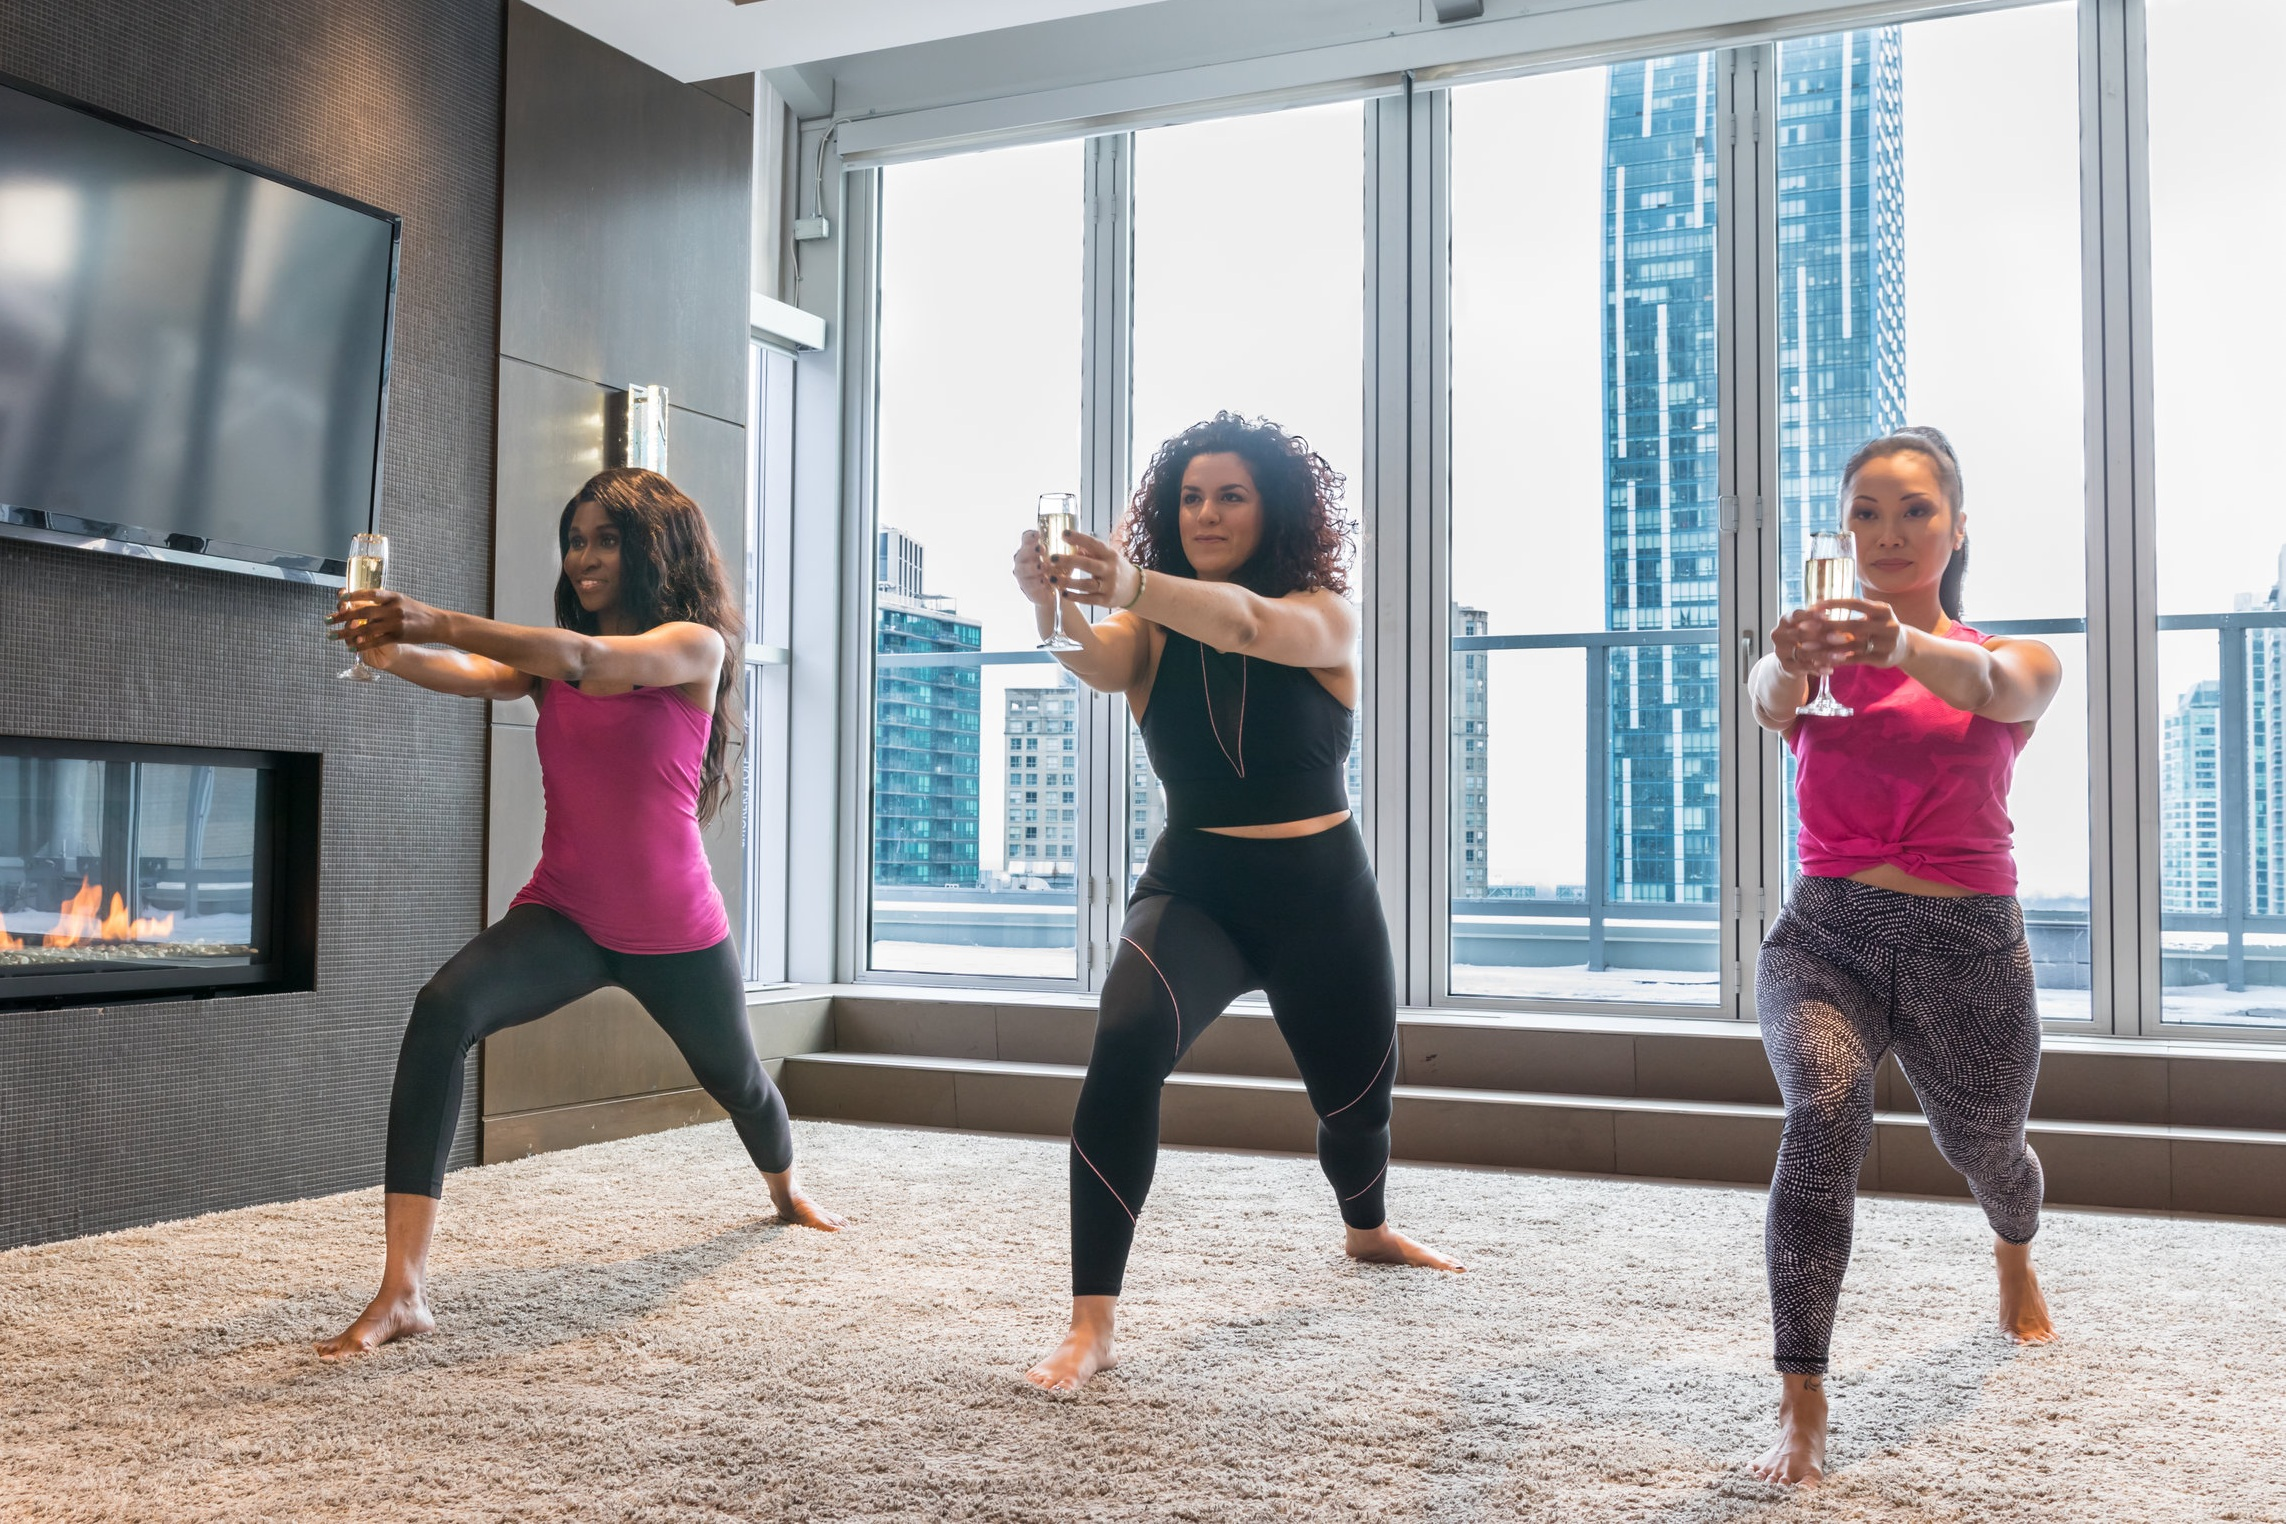 YOGA & CHAMPAGNE - TNCB has created the 1st yoga & champagne class in Toronto!